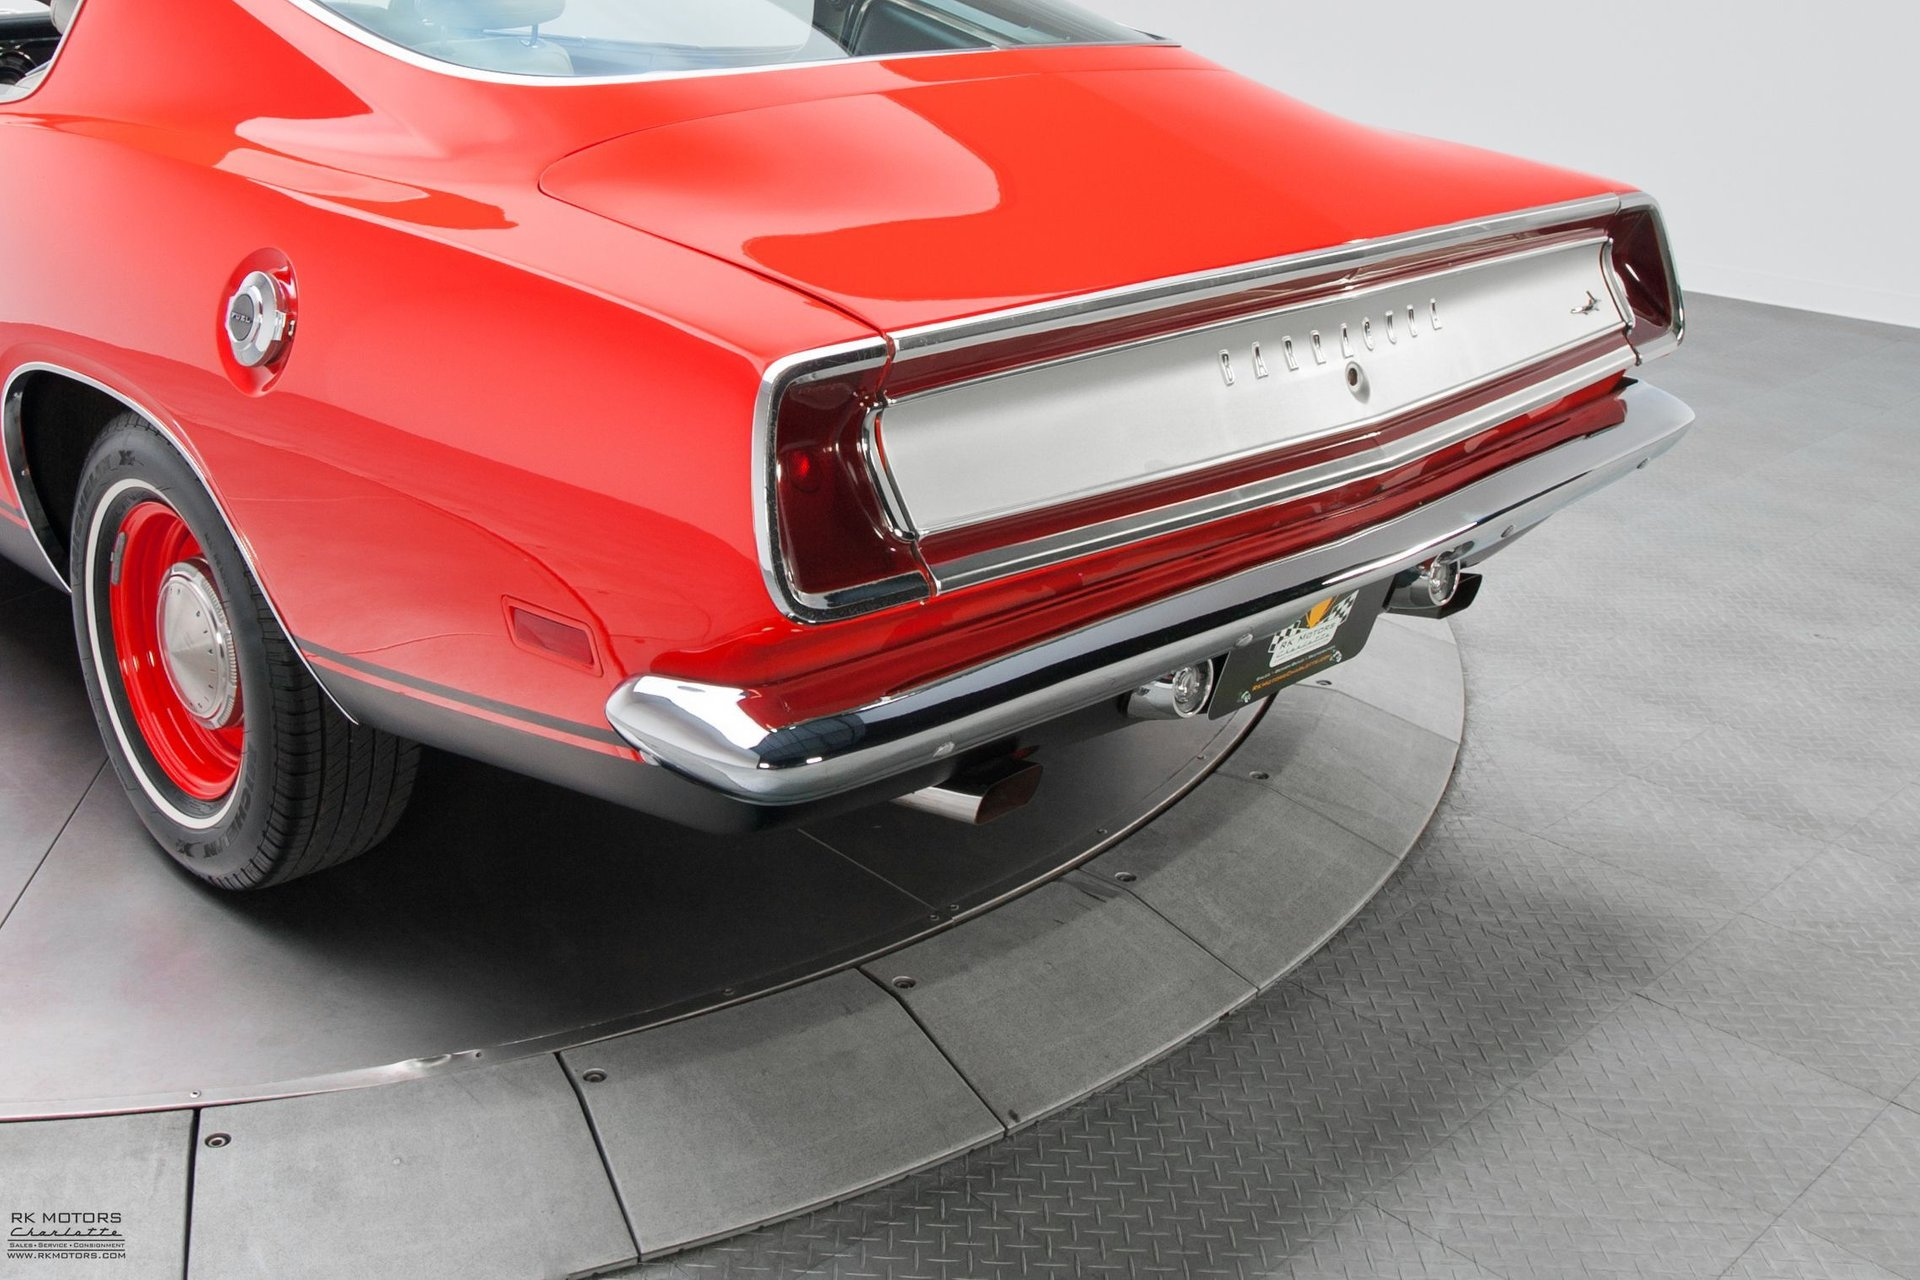 134044 1969 Plymouth 'Cuda RK Motors Classic Cars for Sale